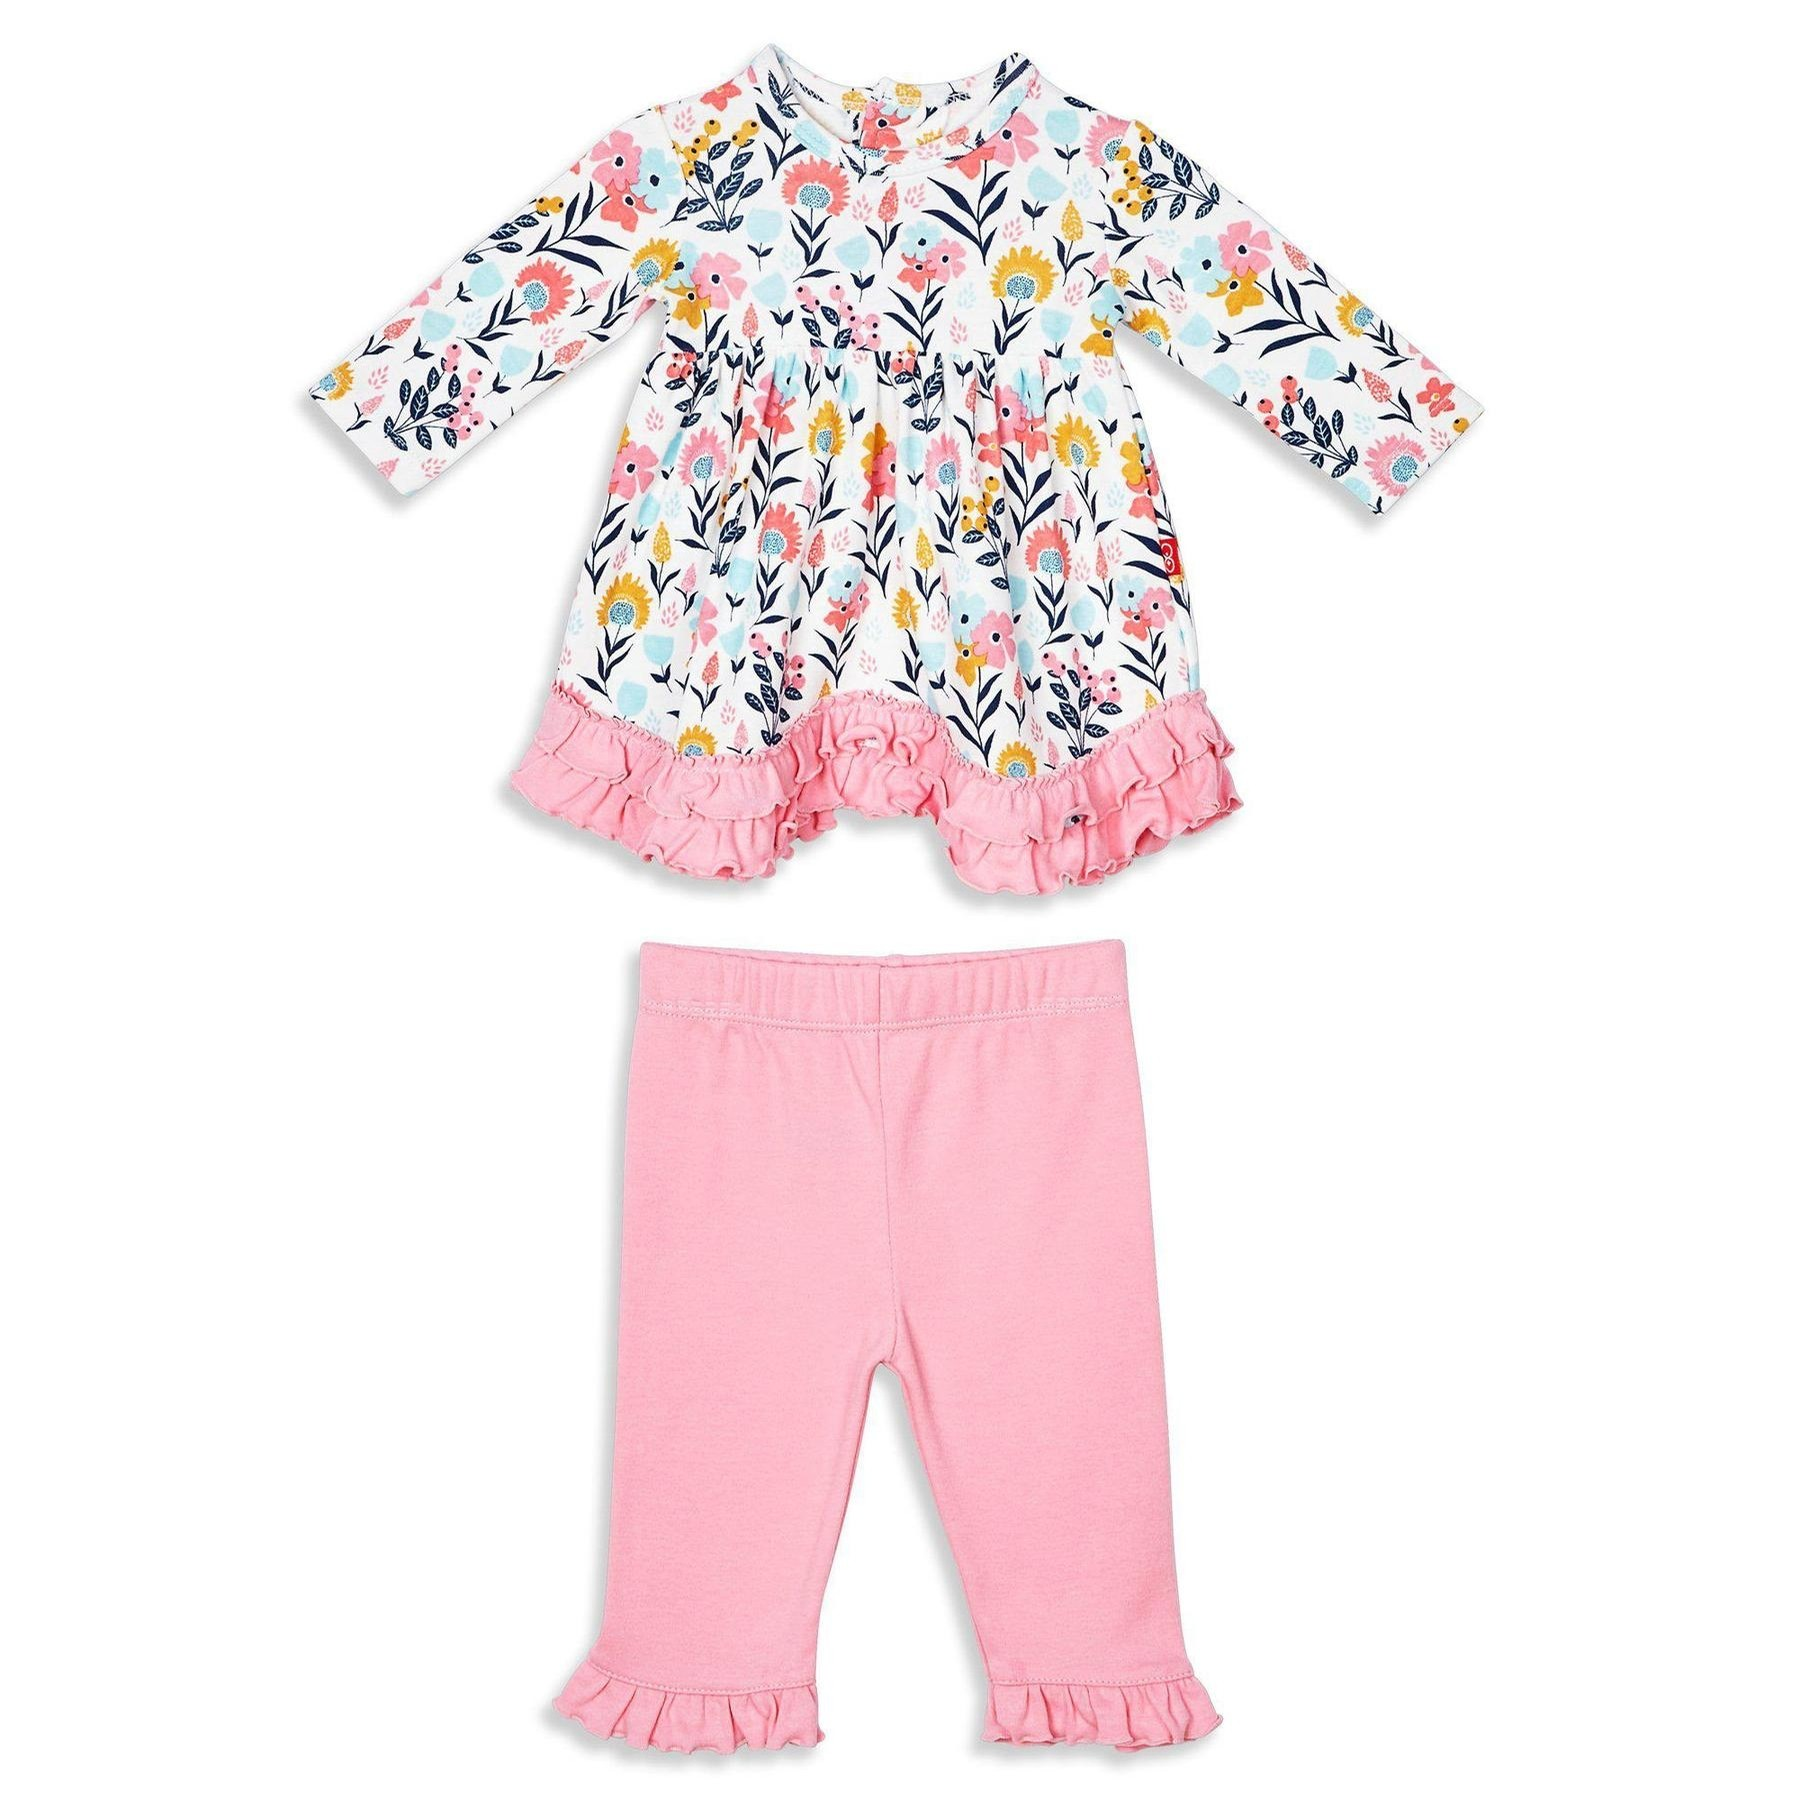 Organic Cotton Magnetic Dress Set with Pants (Sussex Floral)